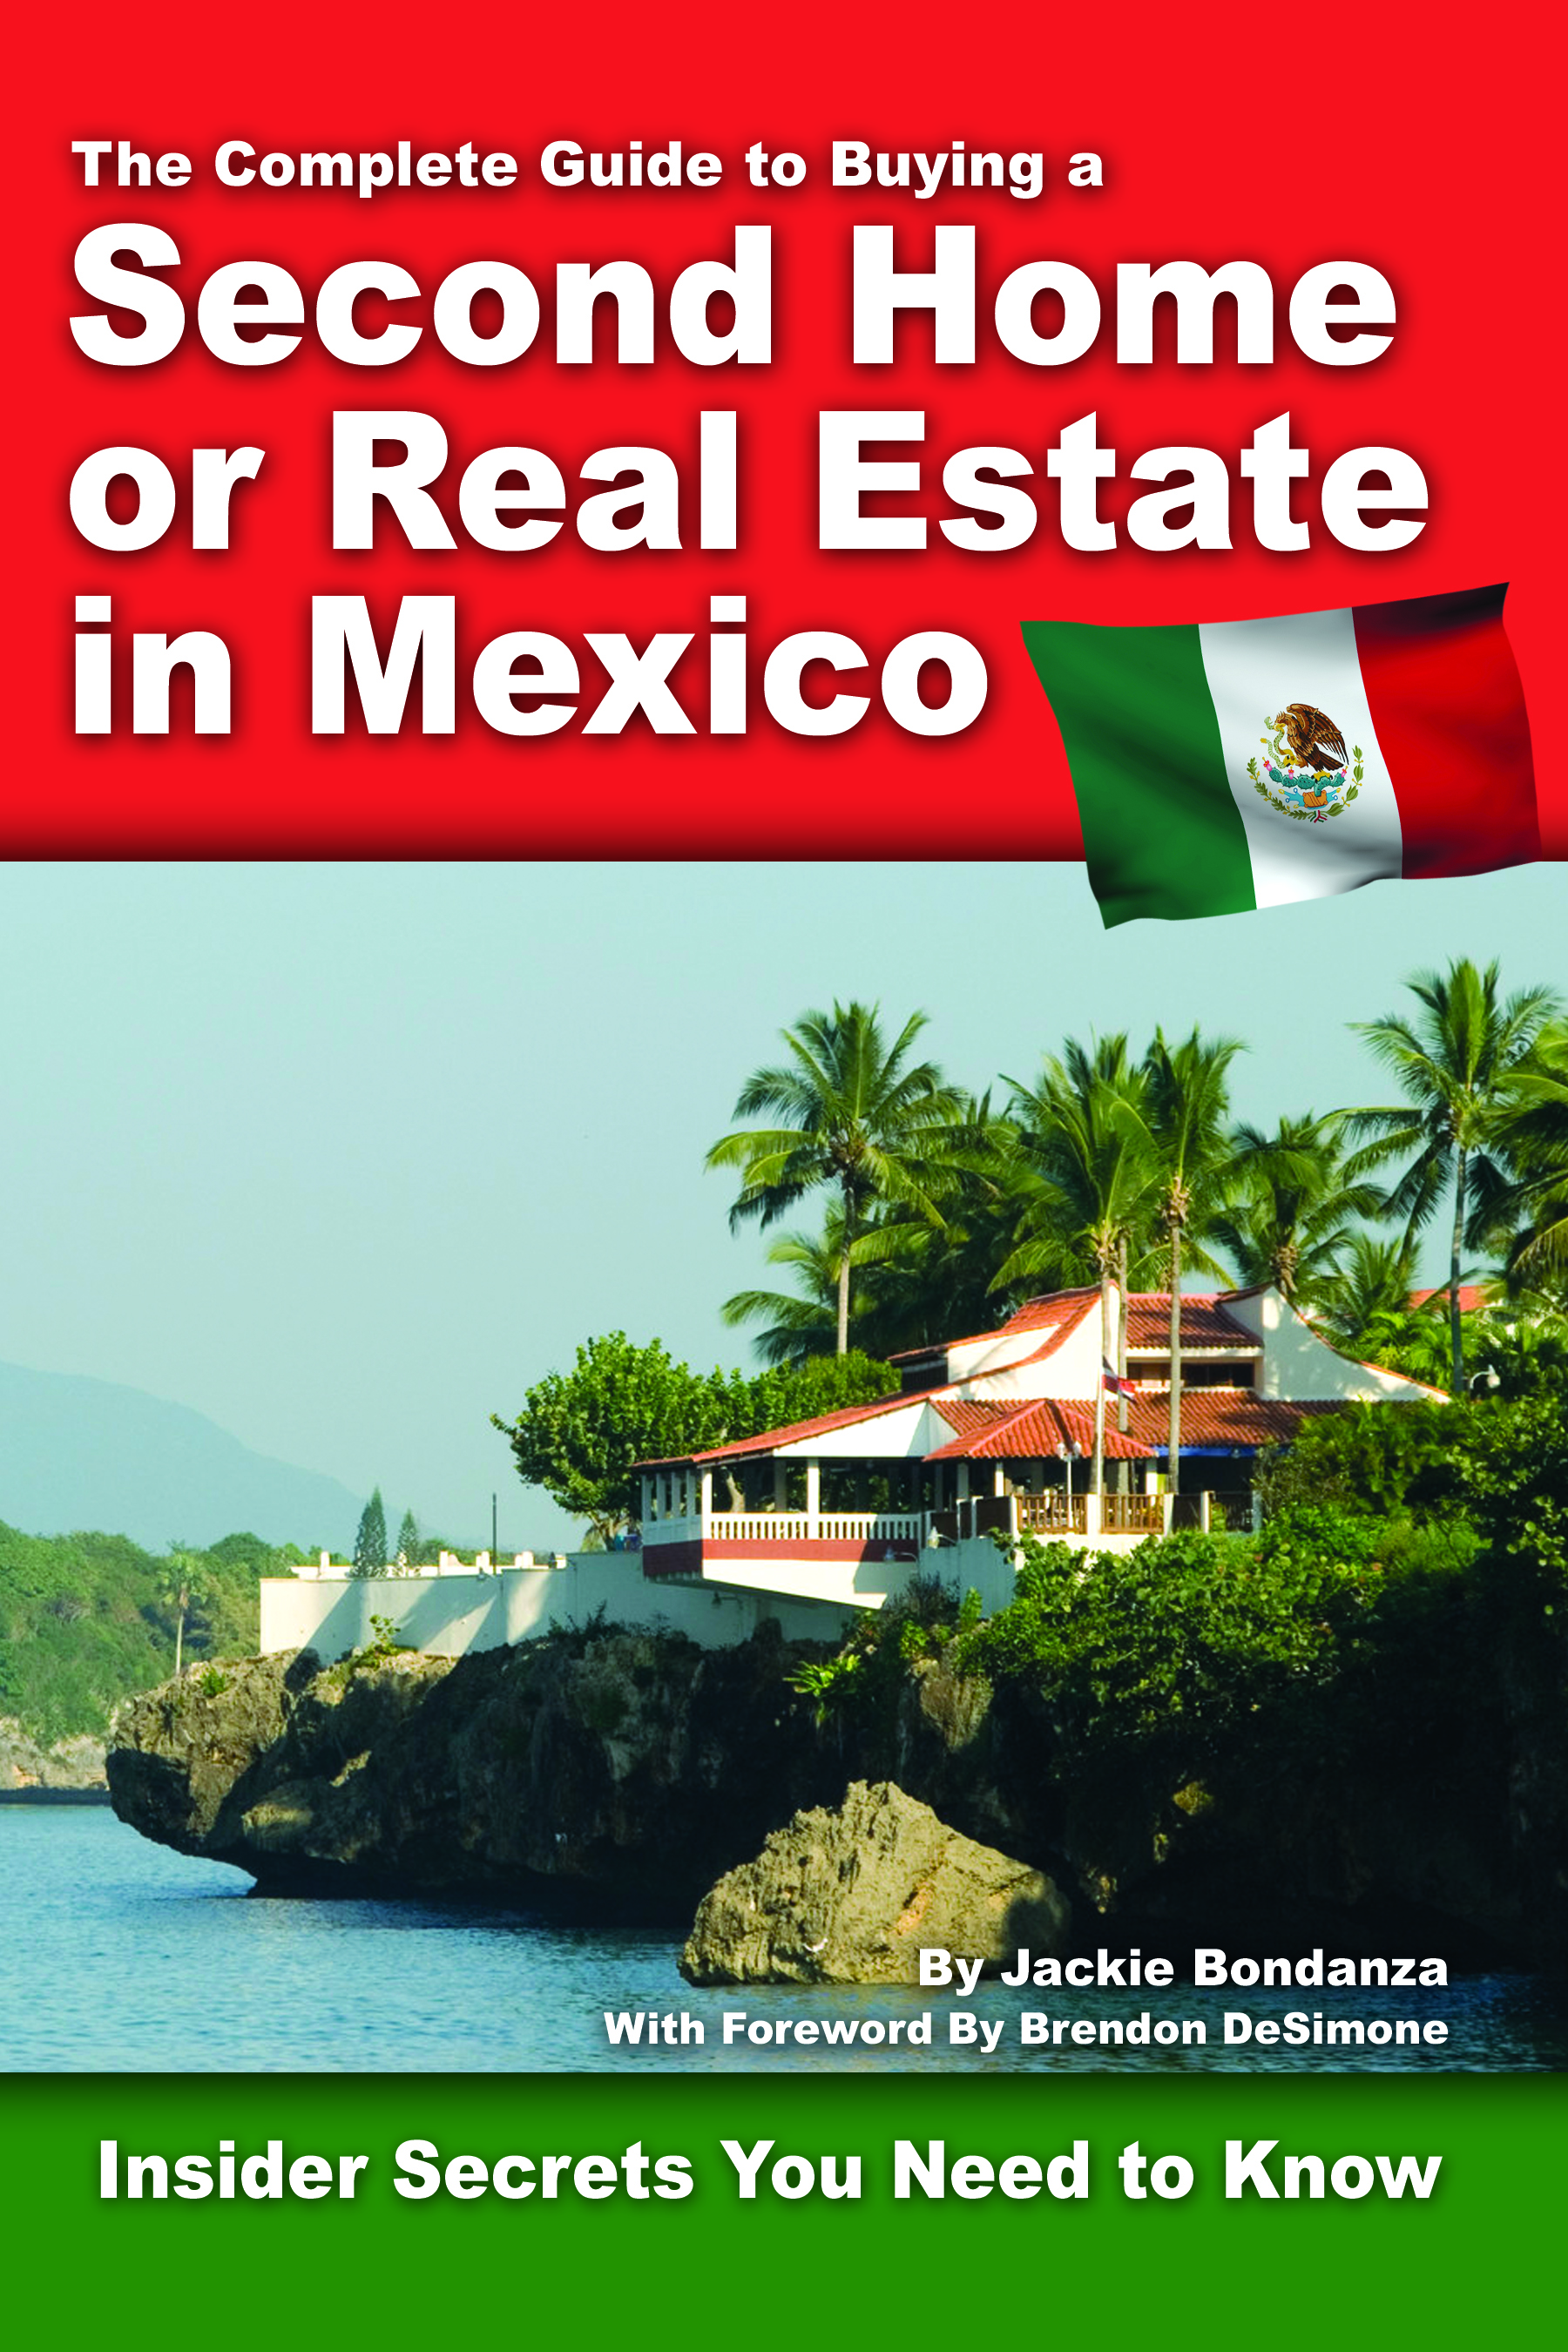 The Complete Guide to Buying a Second Home or Real Estate in Mexico  Insider Secrets You Need to Know